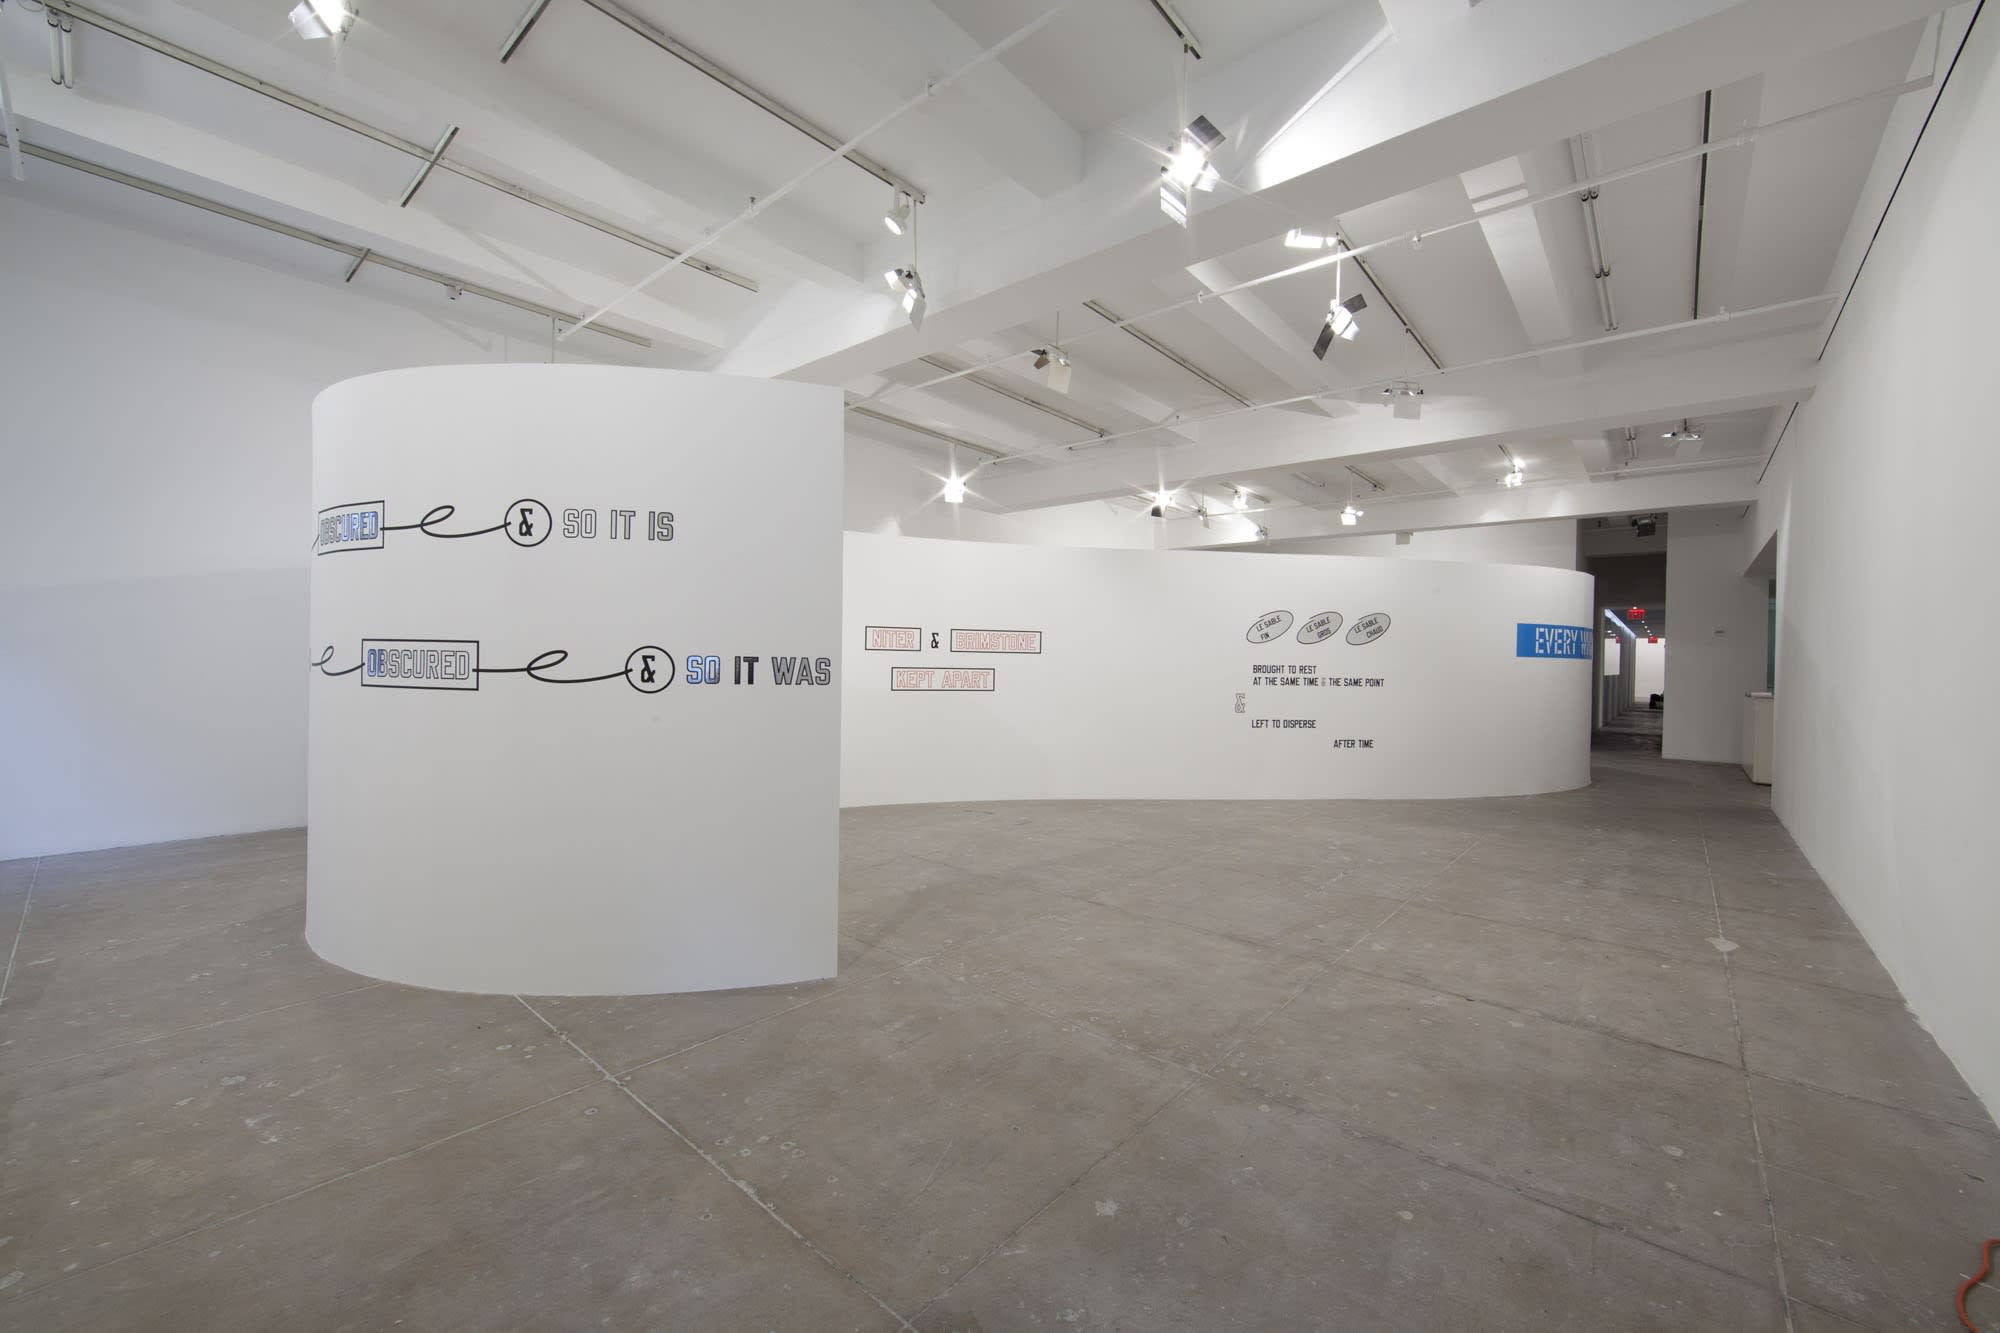 On different curved white walls, various text art has been pasted, reading things like: SO IT IS, and SO IT WAS.